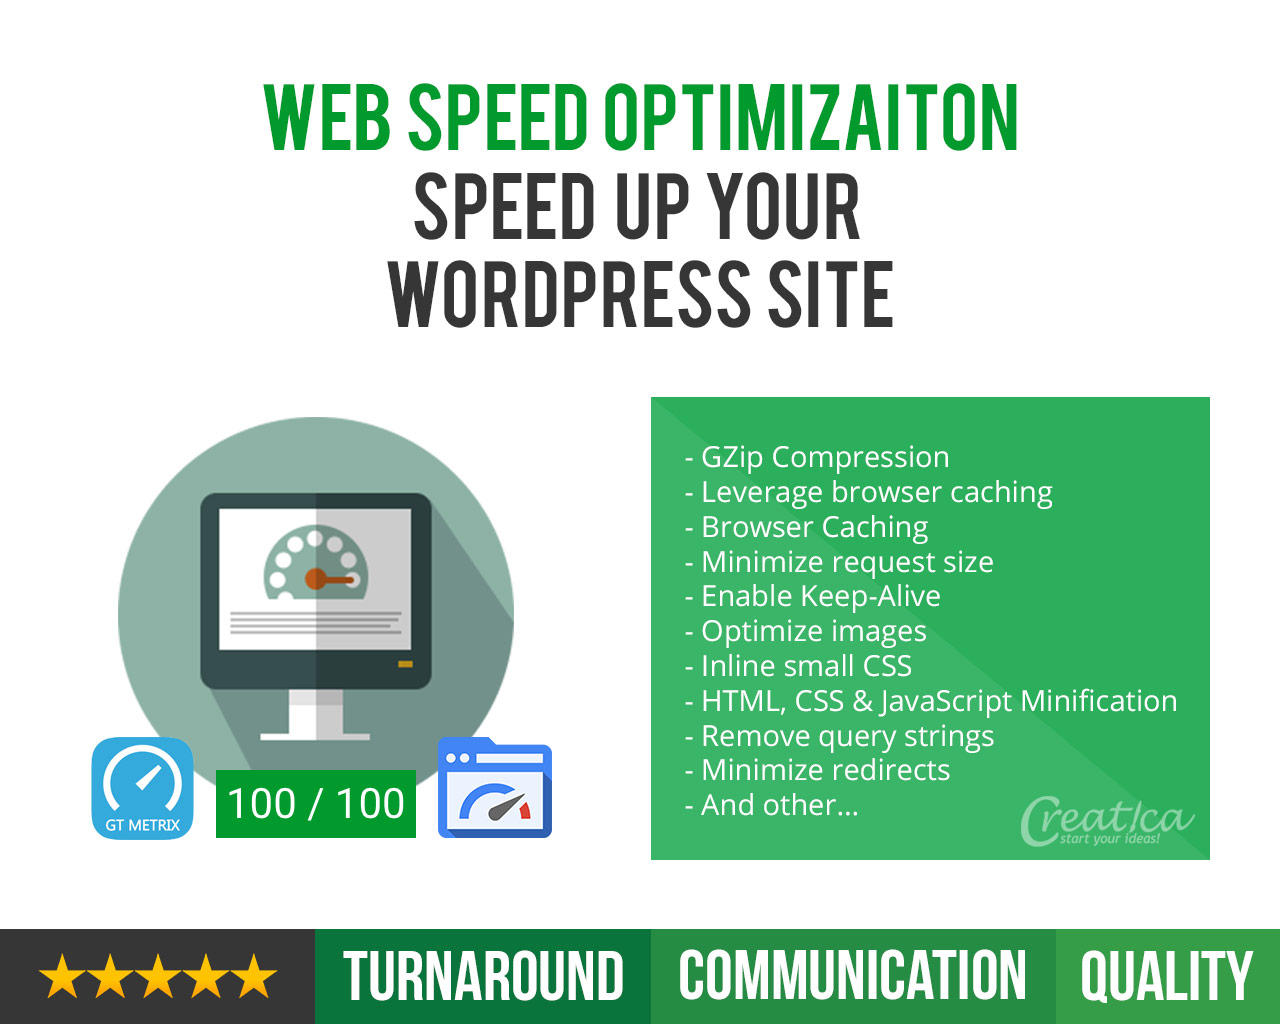 Web Speed Optimisation - Speed Up Your Wordpress Site by CreaticaStudio - 109333